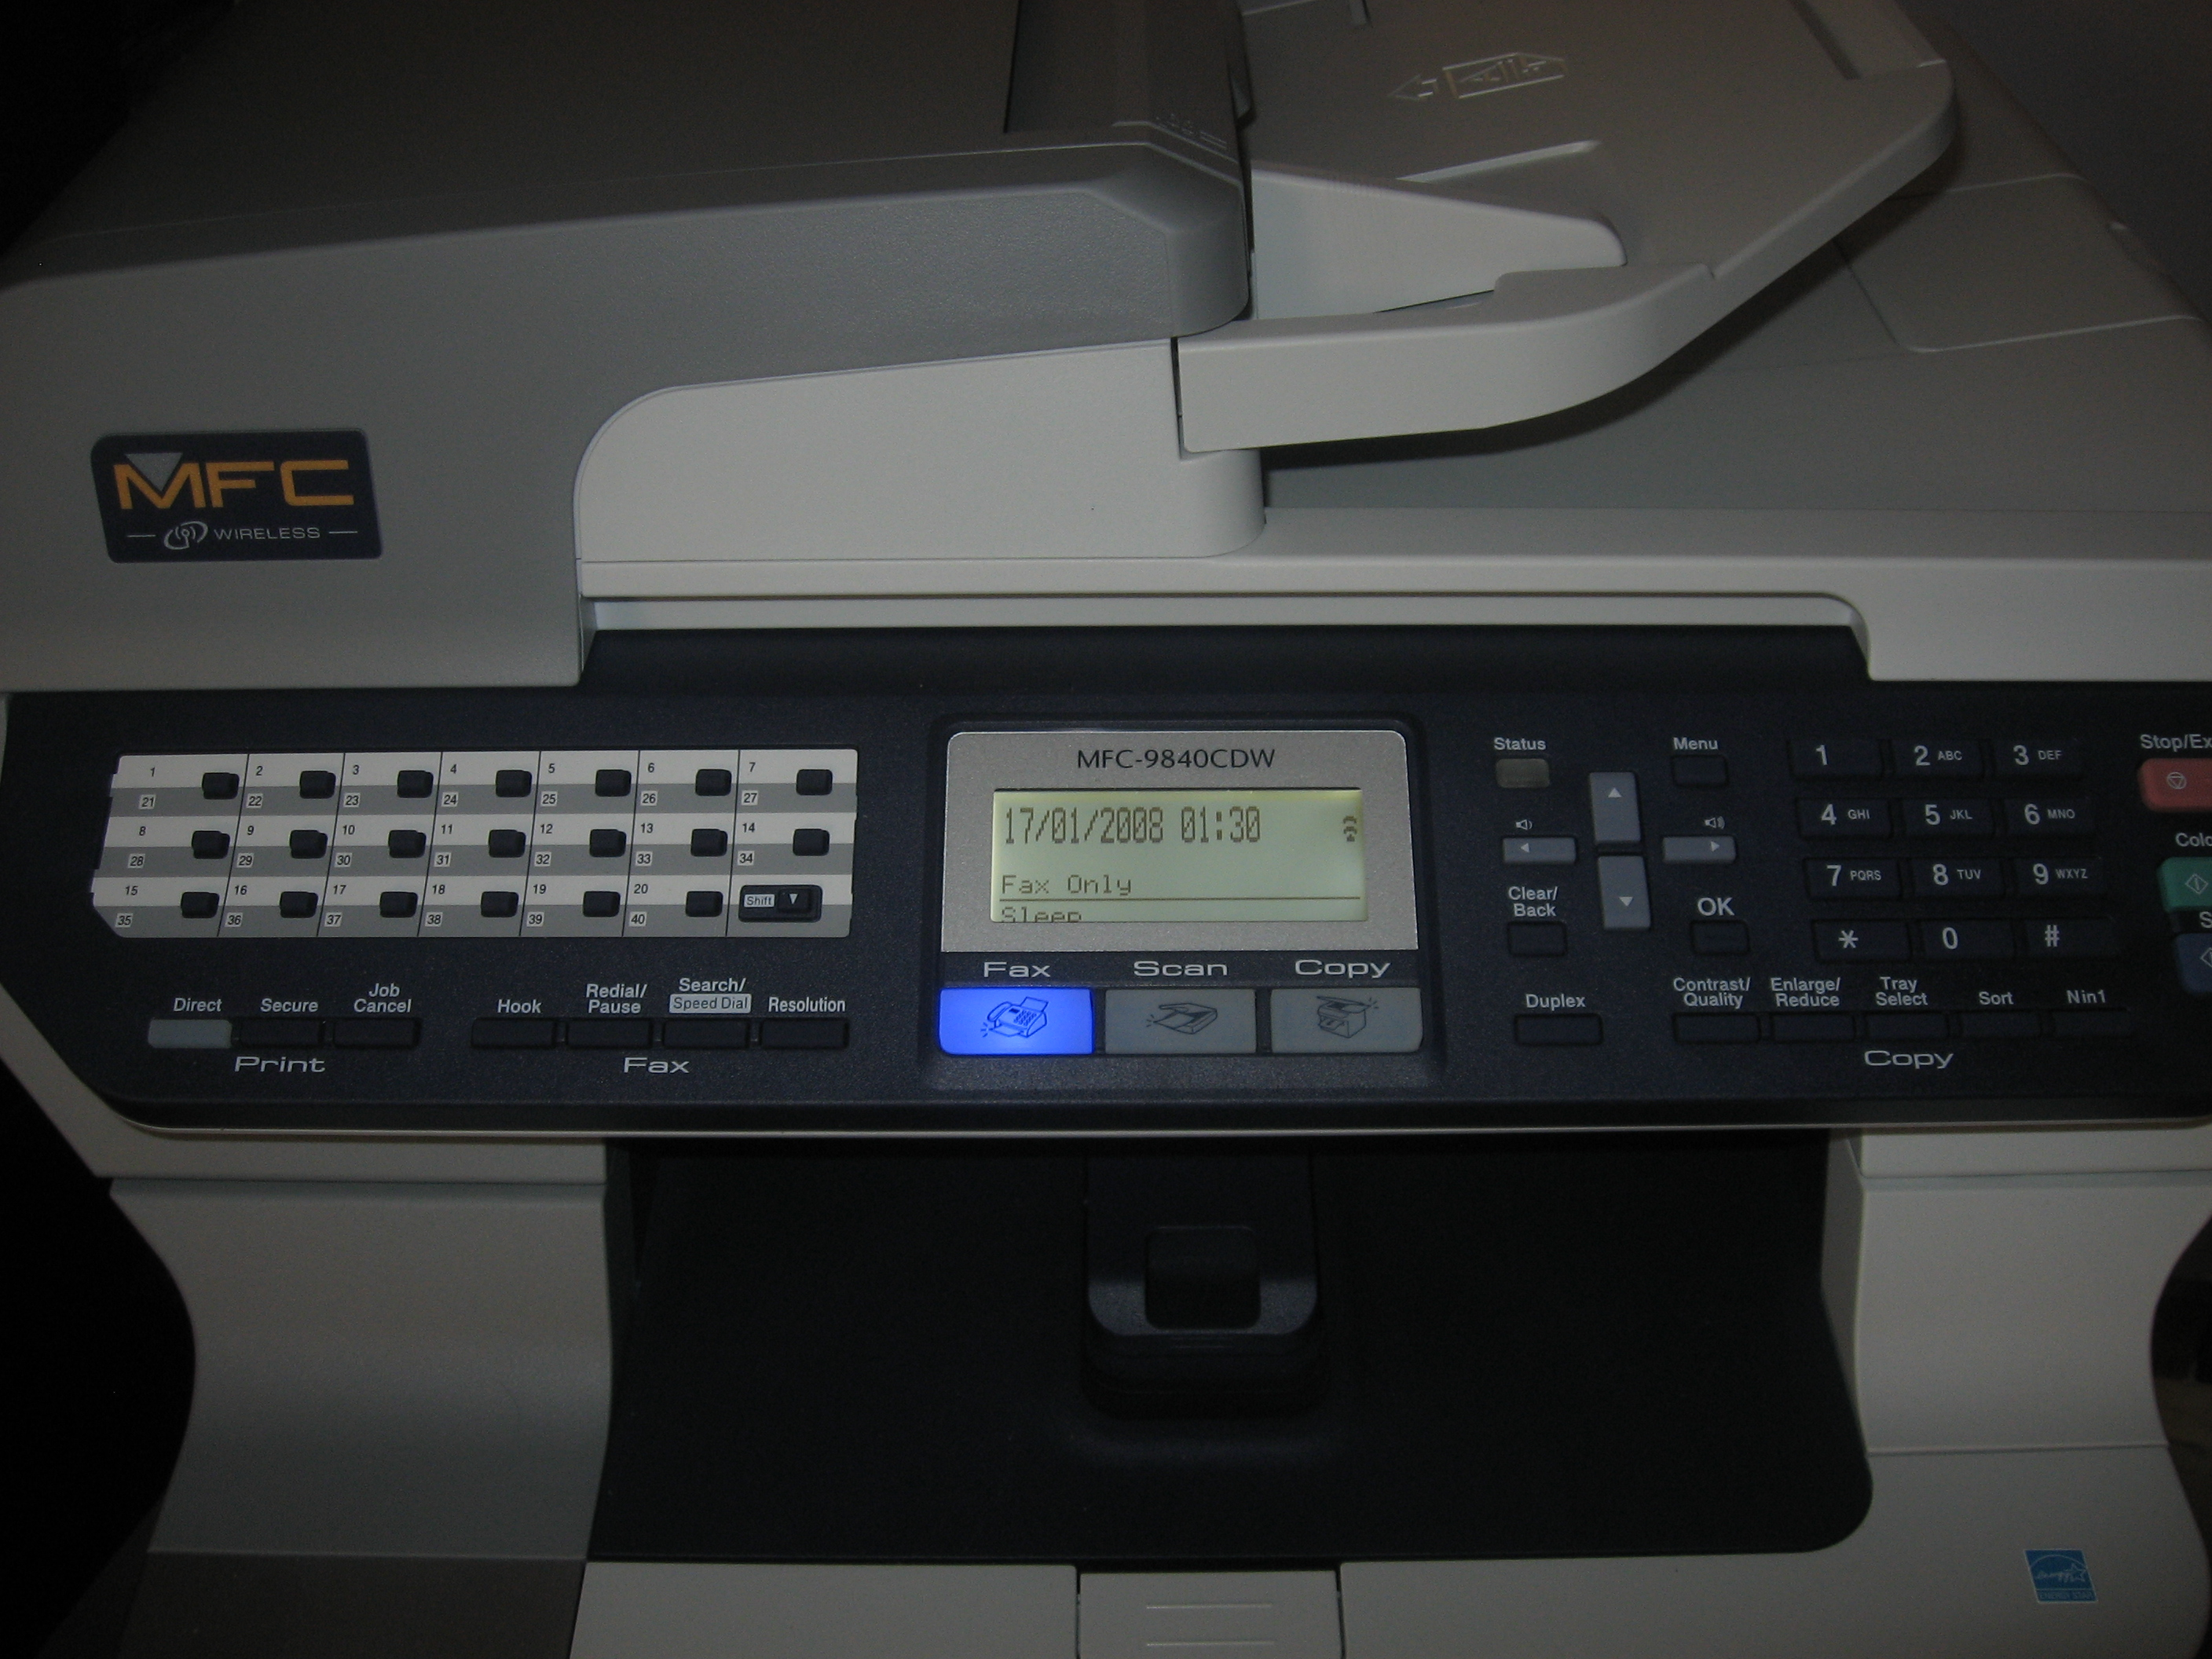 Brother MFC-9840CDW control panel with LCD lit